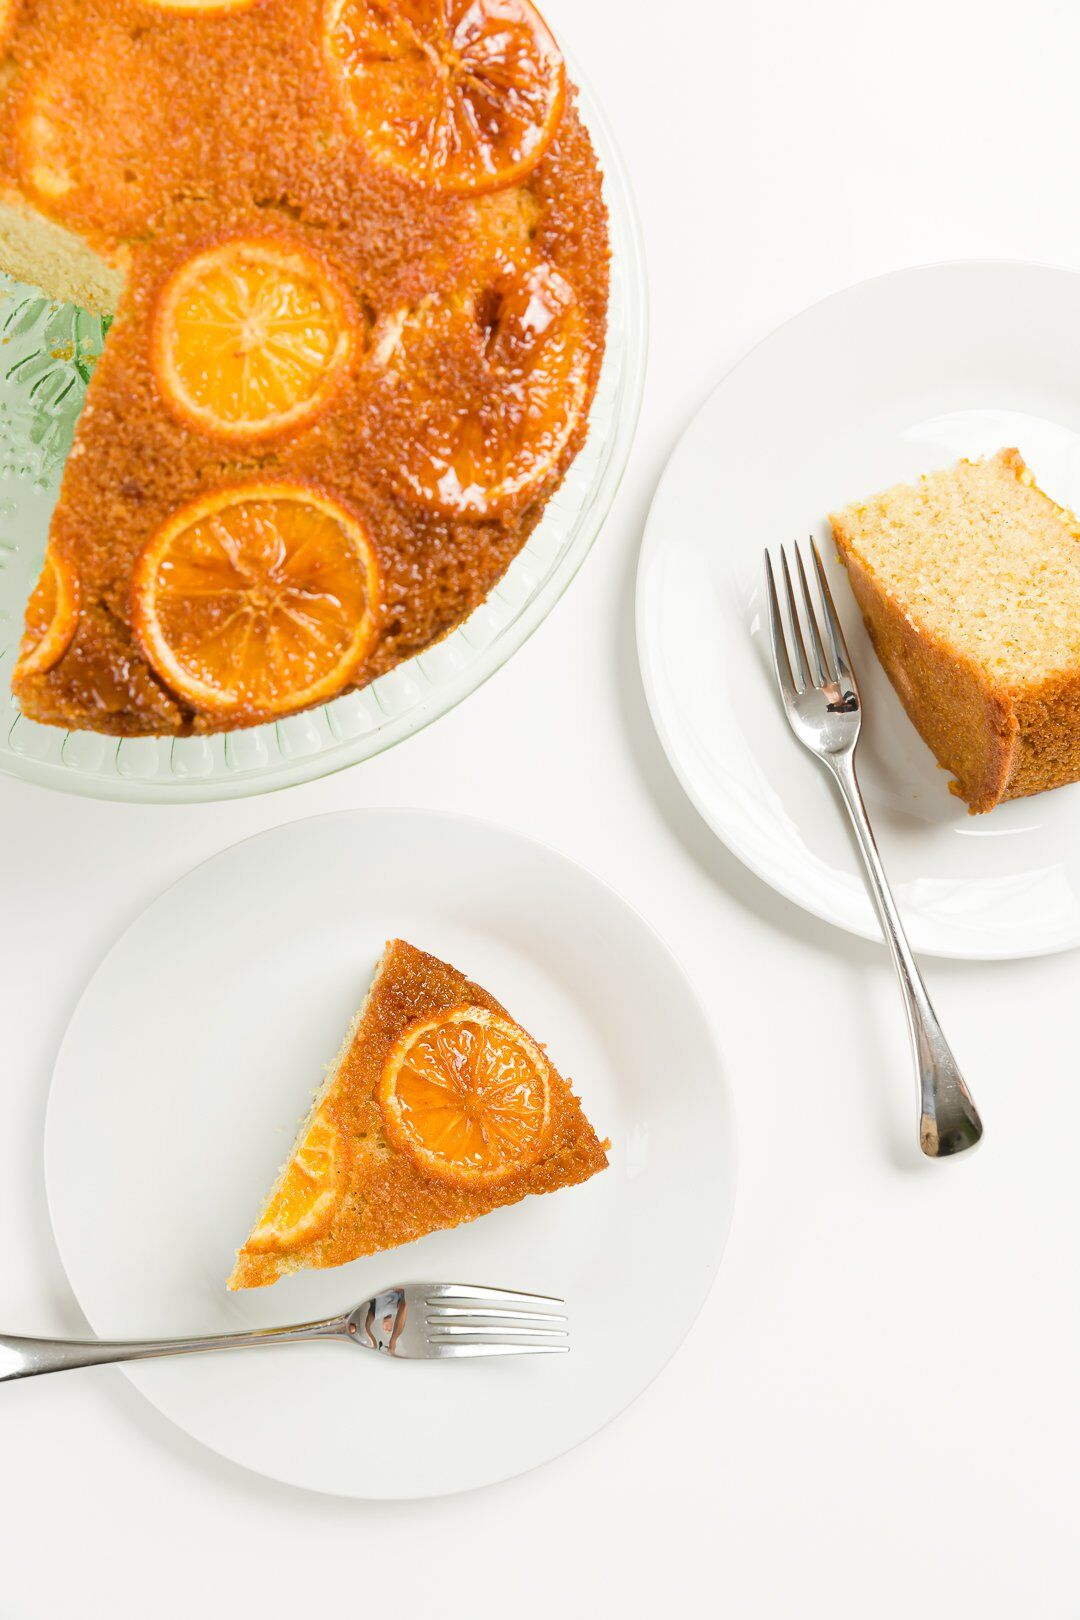 Olive oil cake with oranges